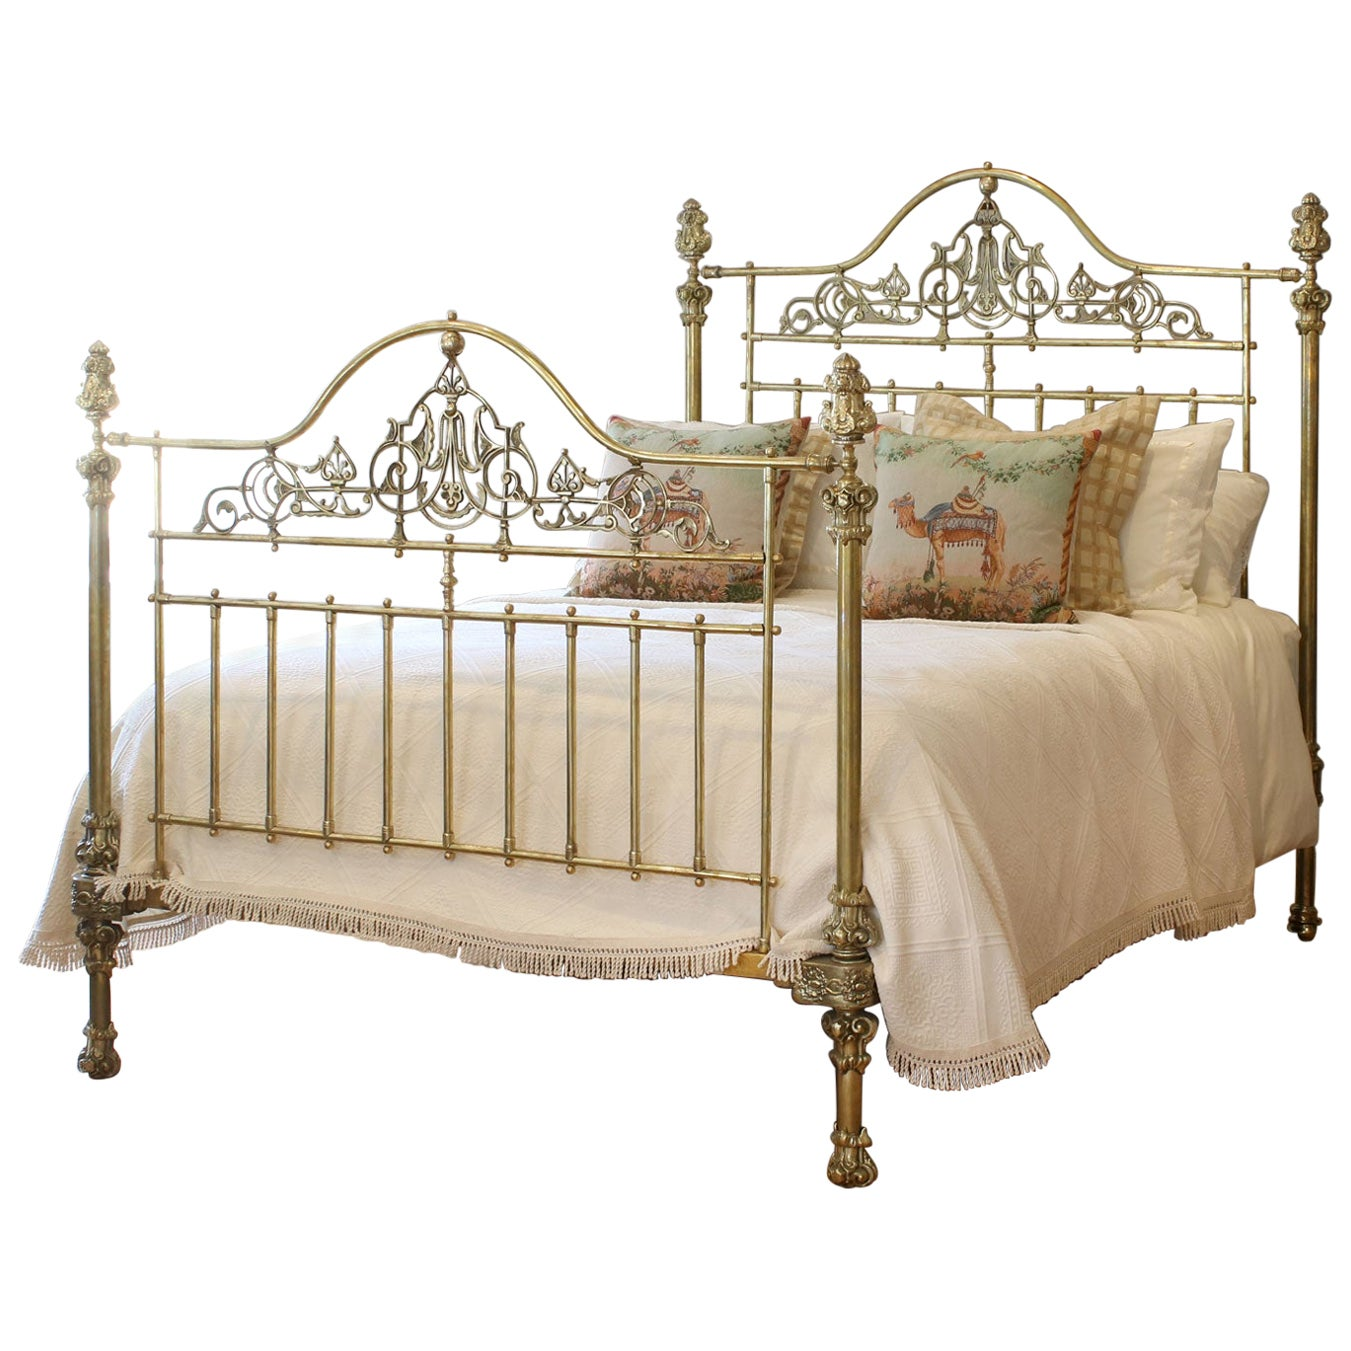 Ornate All Brass Antique Bed MK225